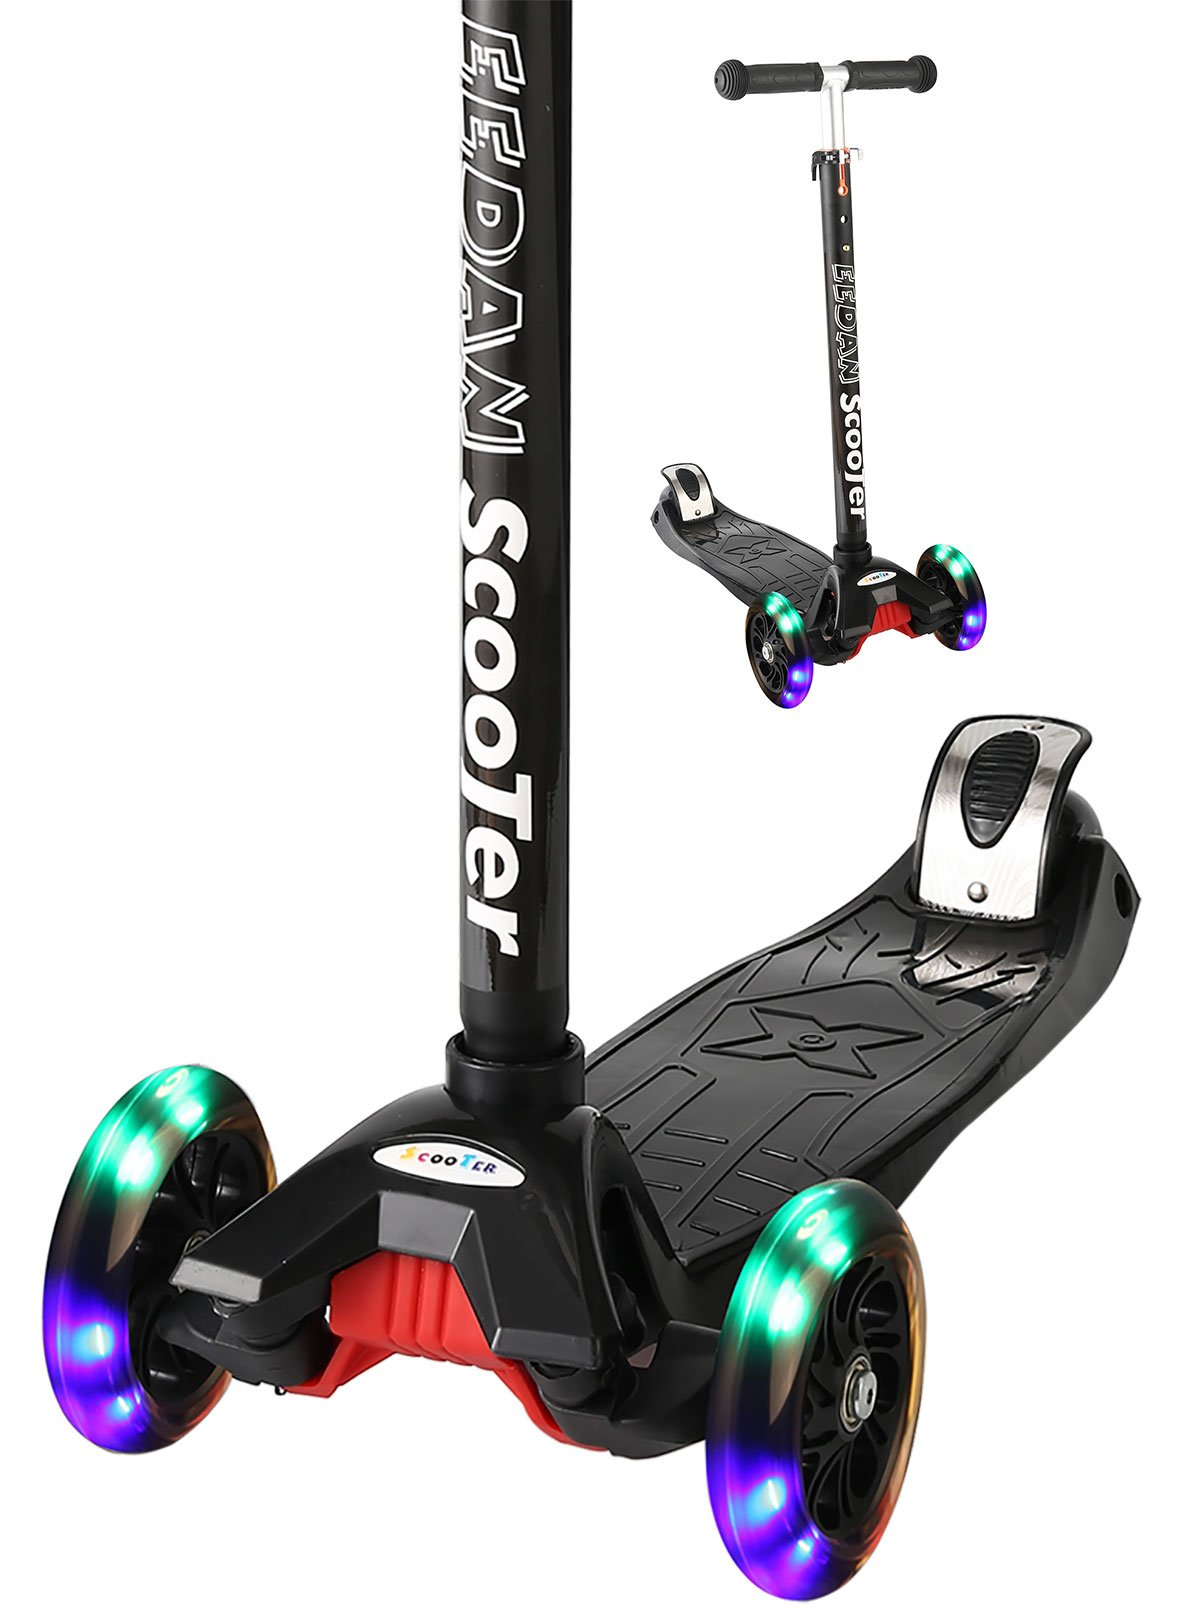 EEDAN Scooter Kids 3 Wheel T-Bar Adjustable Height Handle Kick Scooters Max Glider Deluxe PU Flashing Wheels Wide Deck Children from 2 to 14 Year-Old (Black)